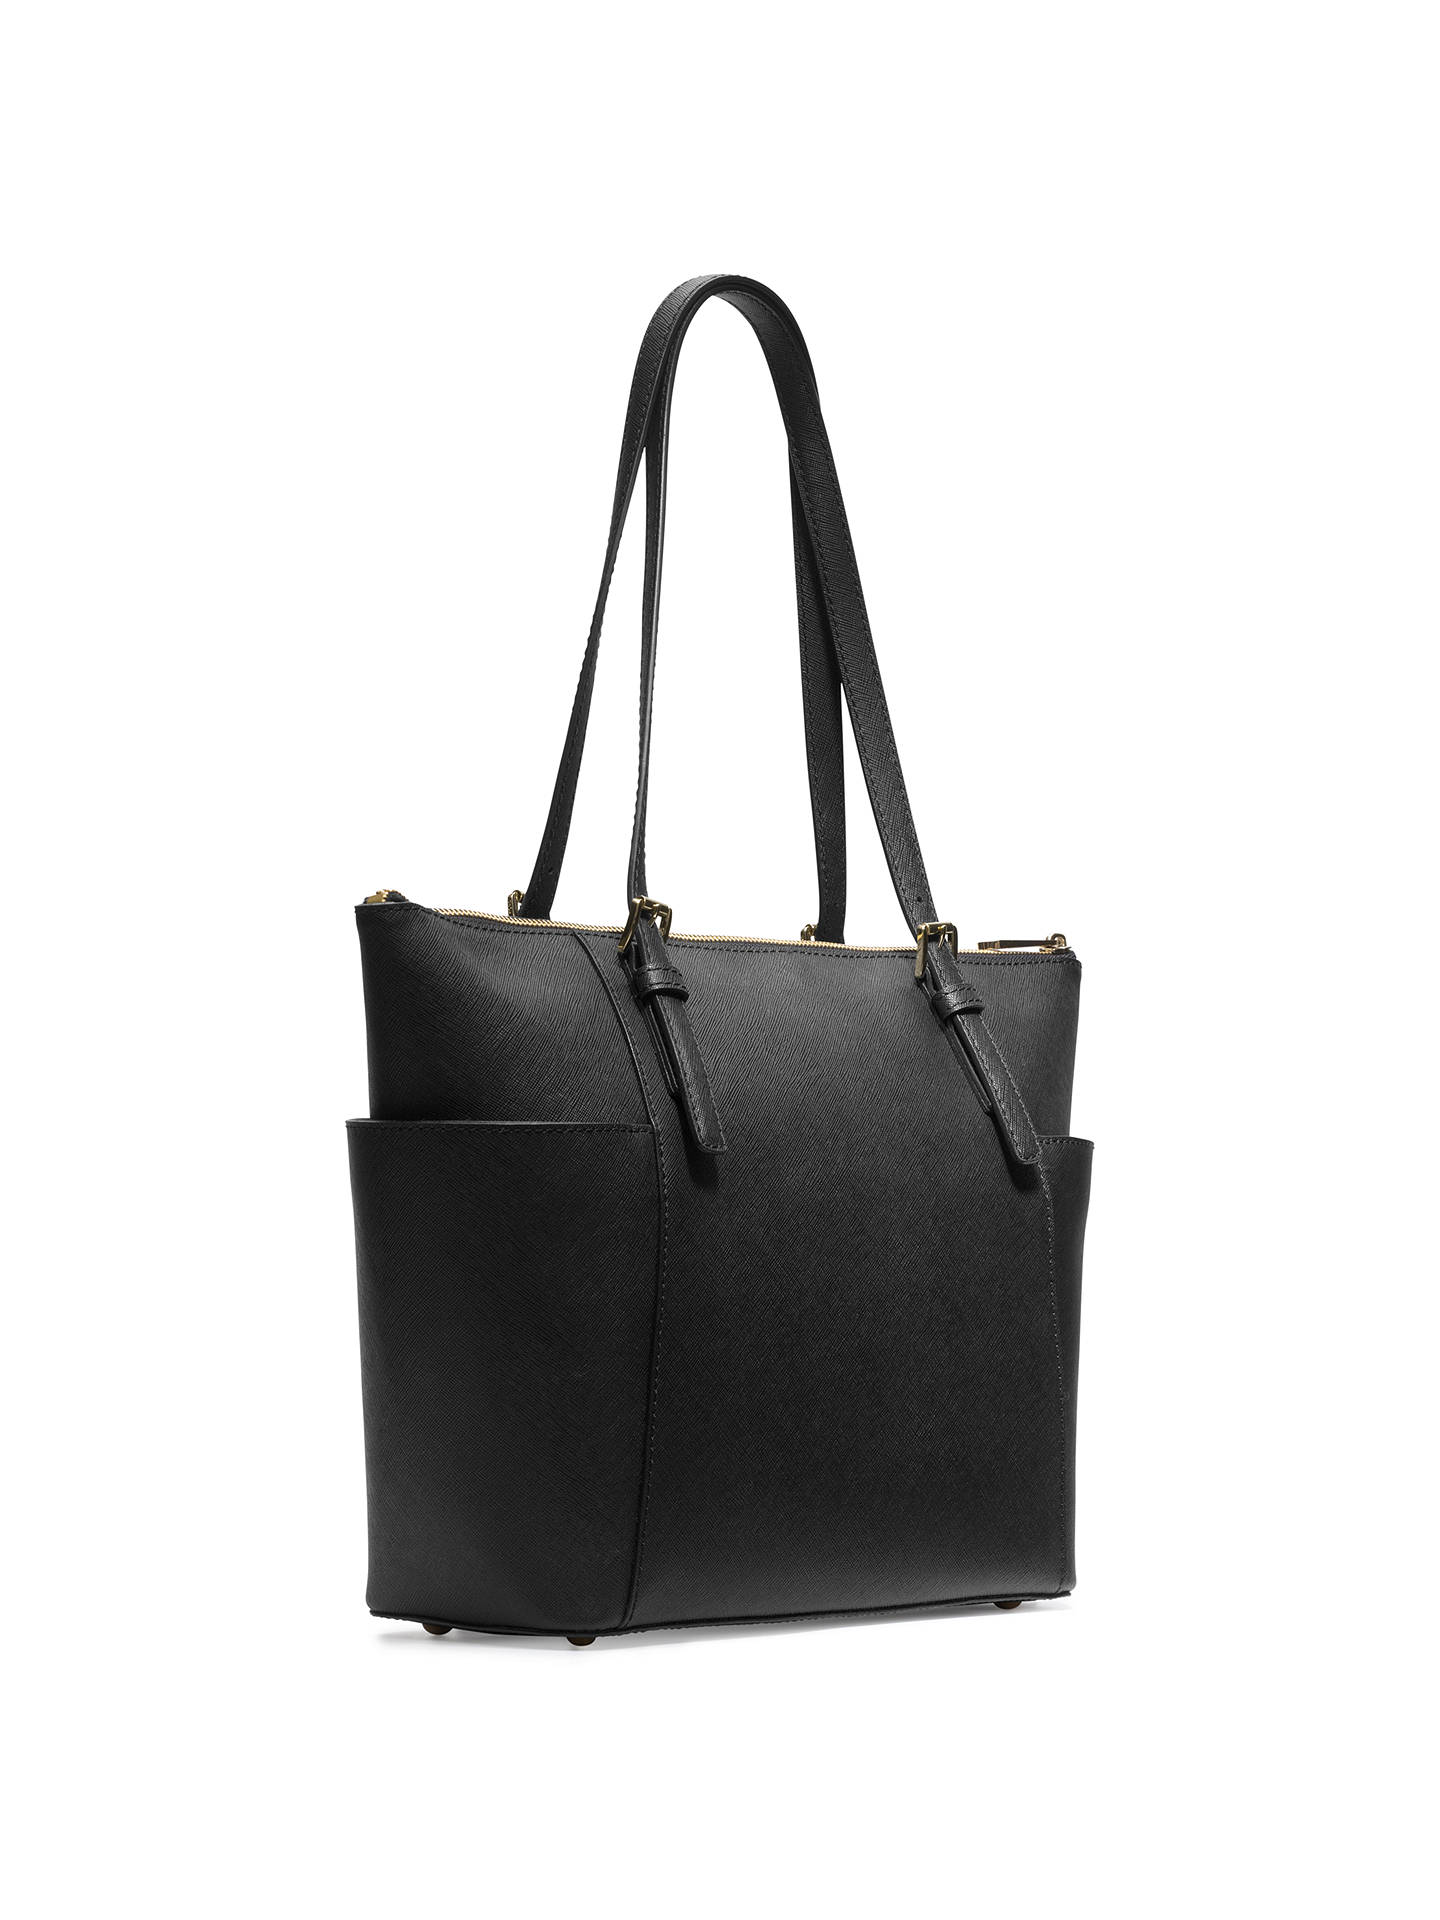 794f46a2fc3e ... Buy MICHAEL Michael Kors Jet Set East/West Leather Tote Bag, Black  Online at ...